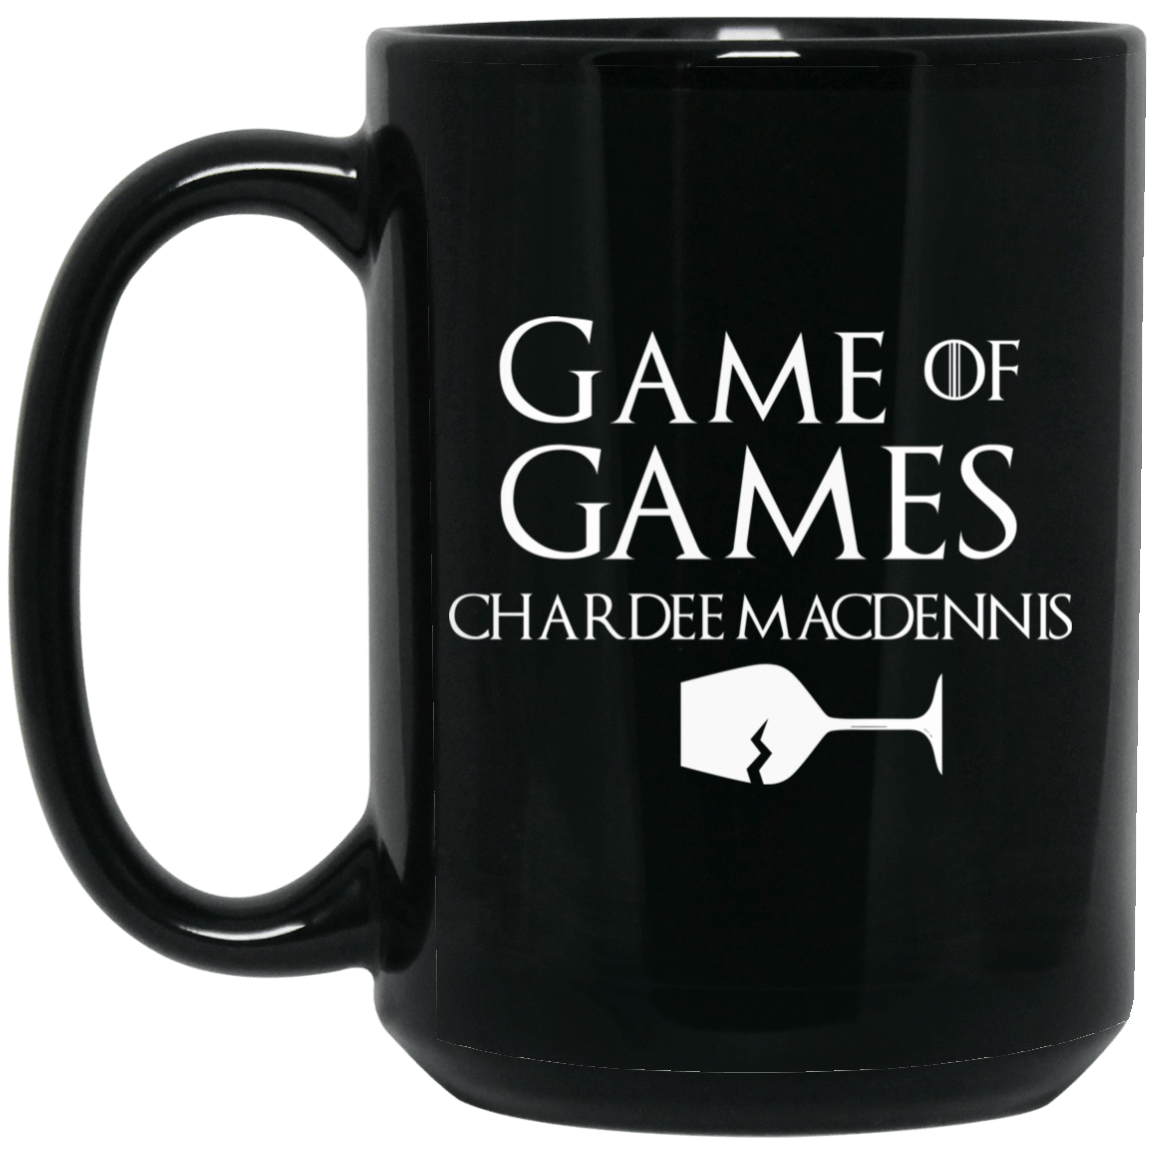 Game Of Games Chardee Macdennis Mug 1066-10182-72957277-49311 - Tee Ript